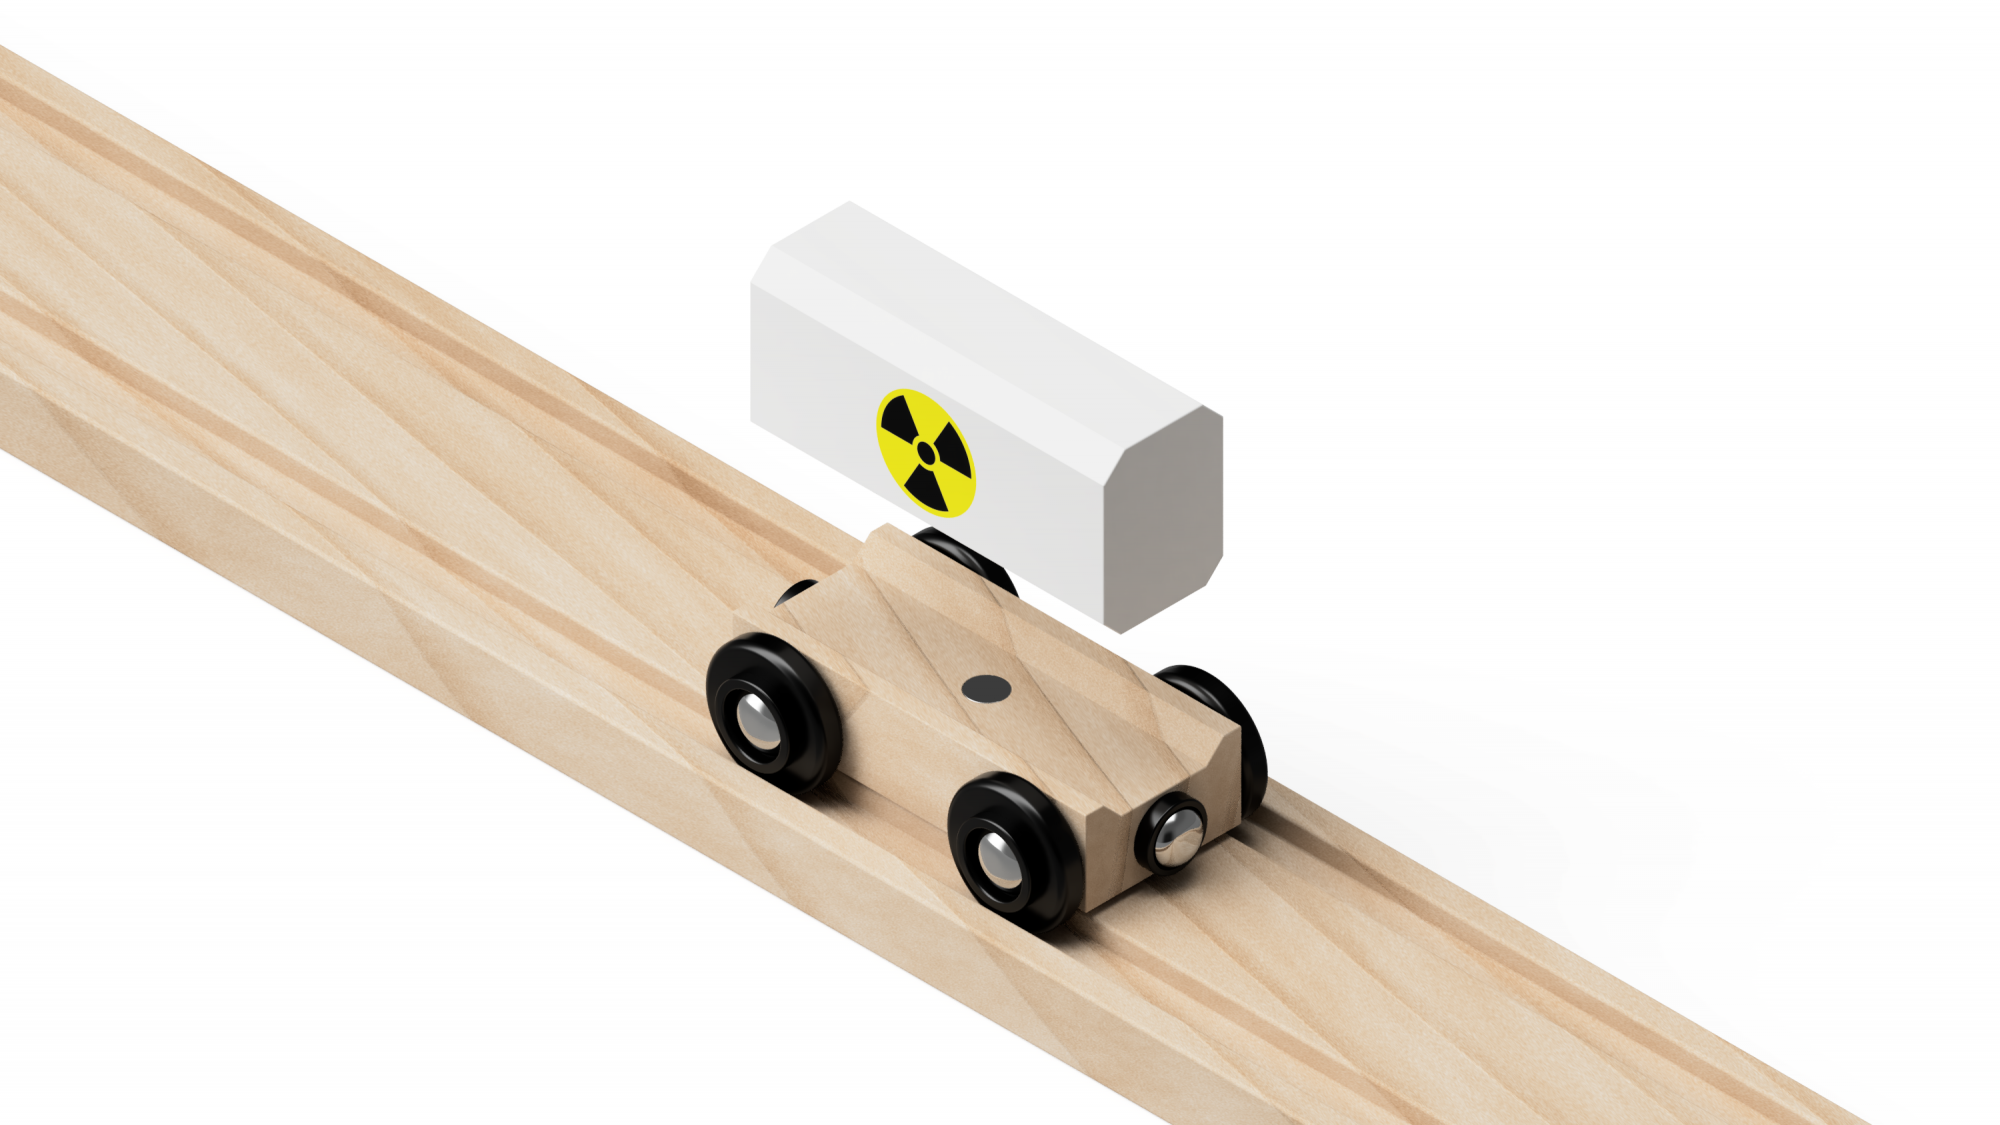 07 Nuclear Toy Train_by Tomm